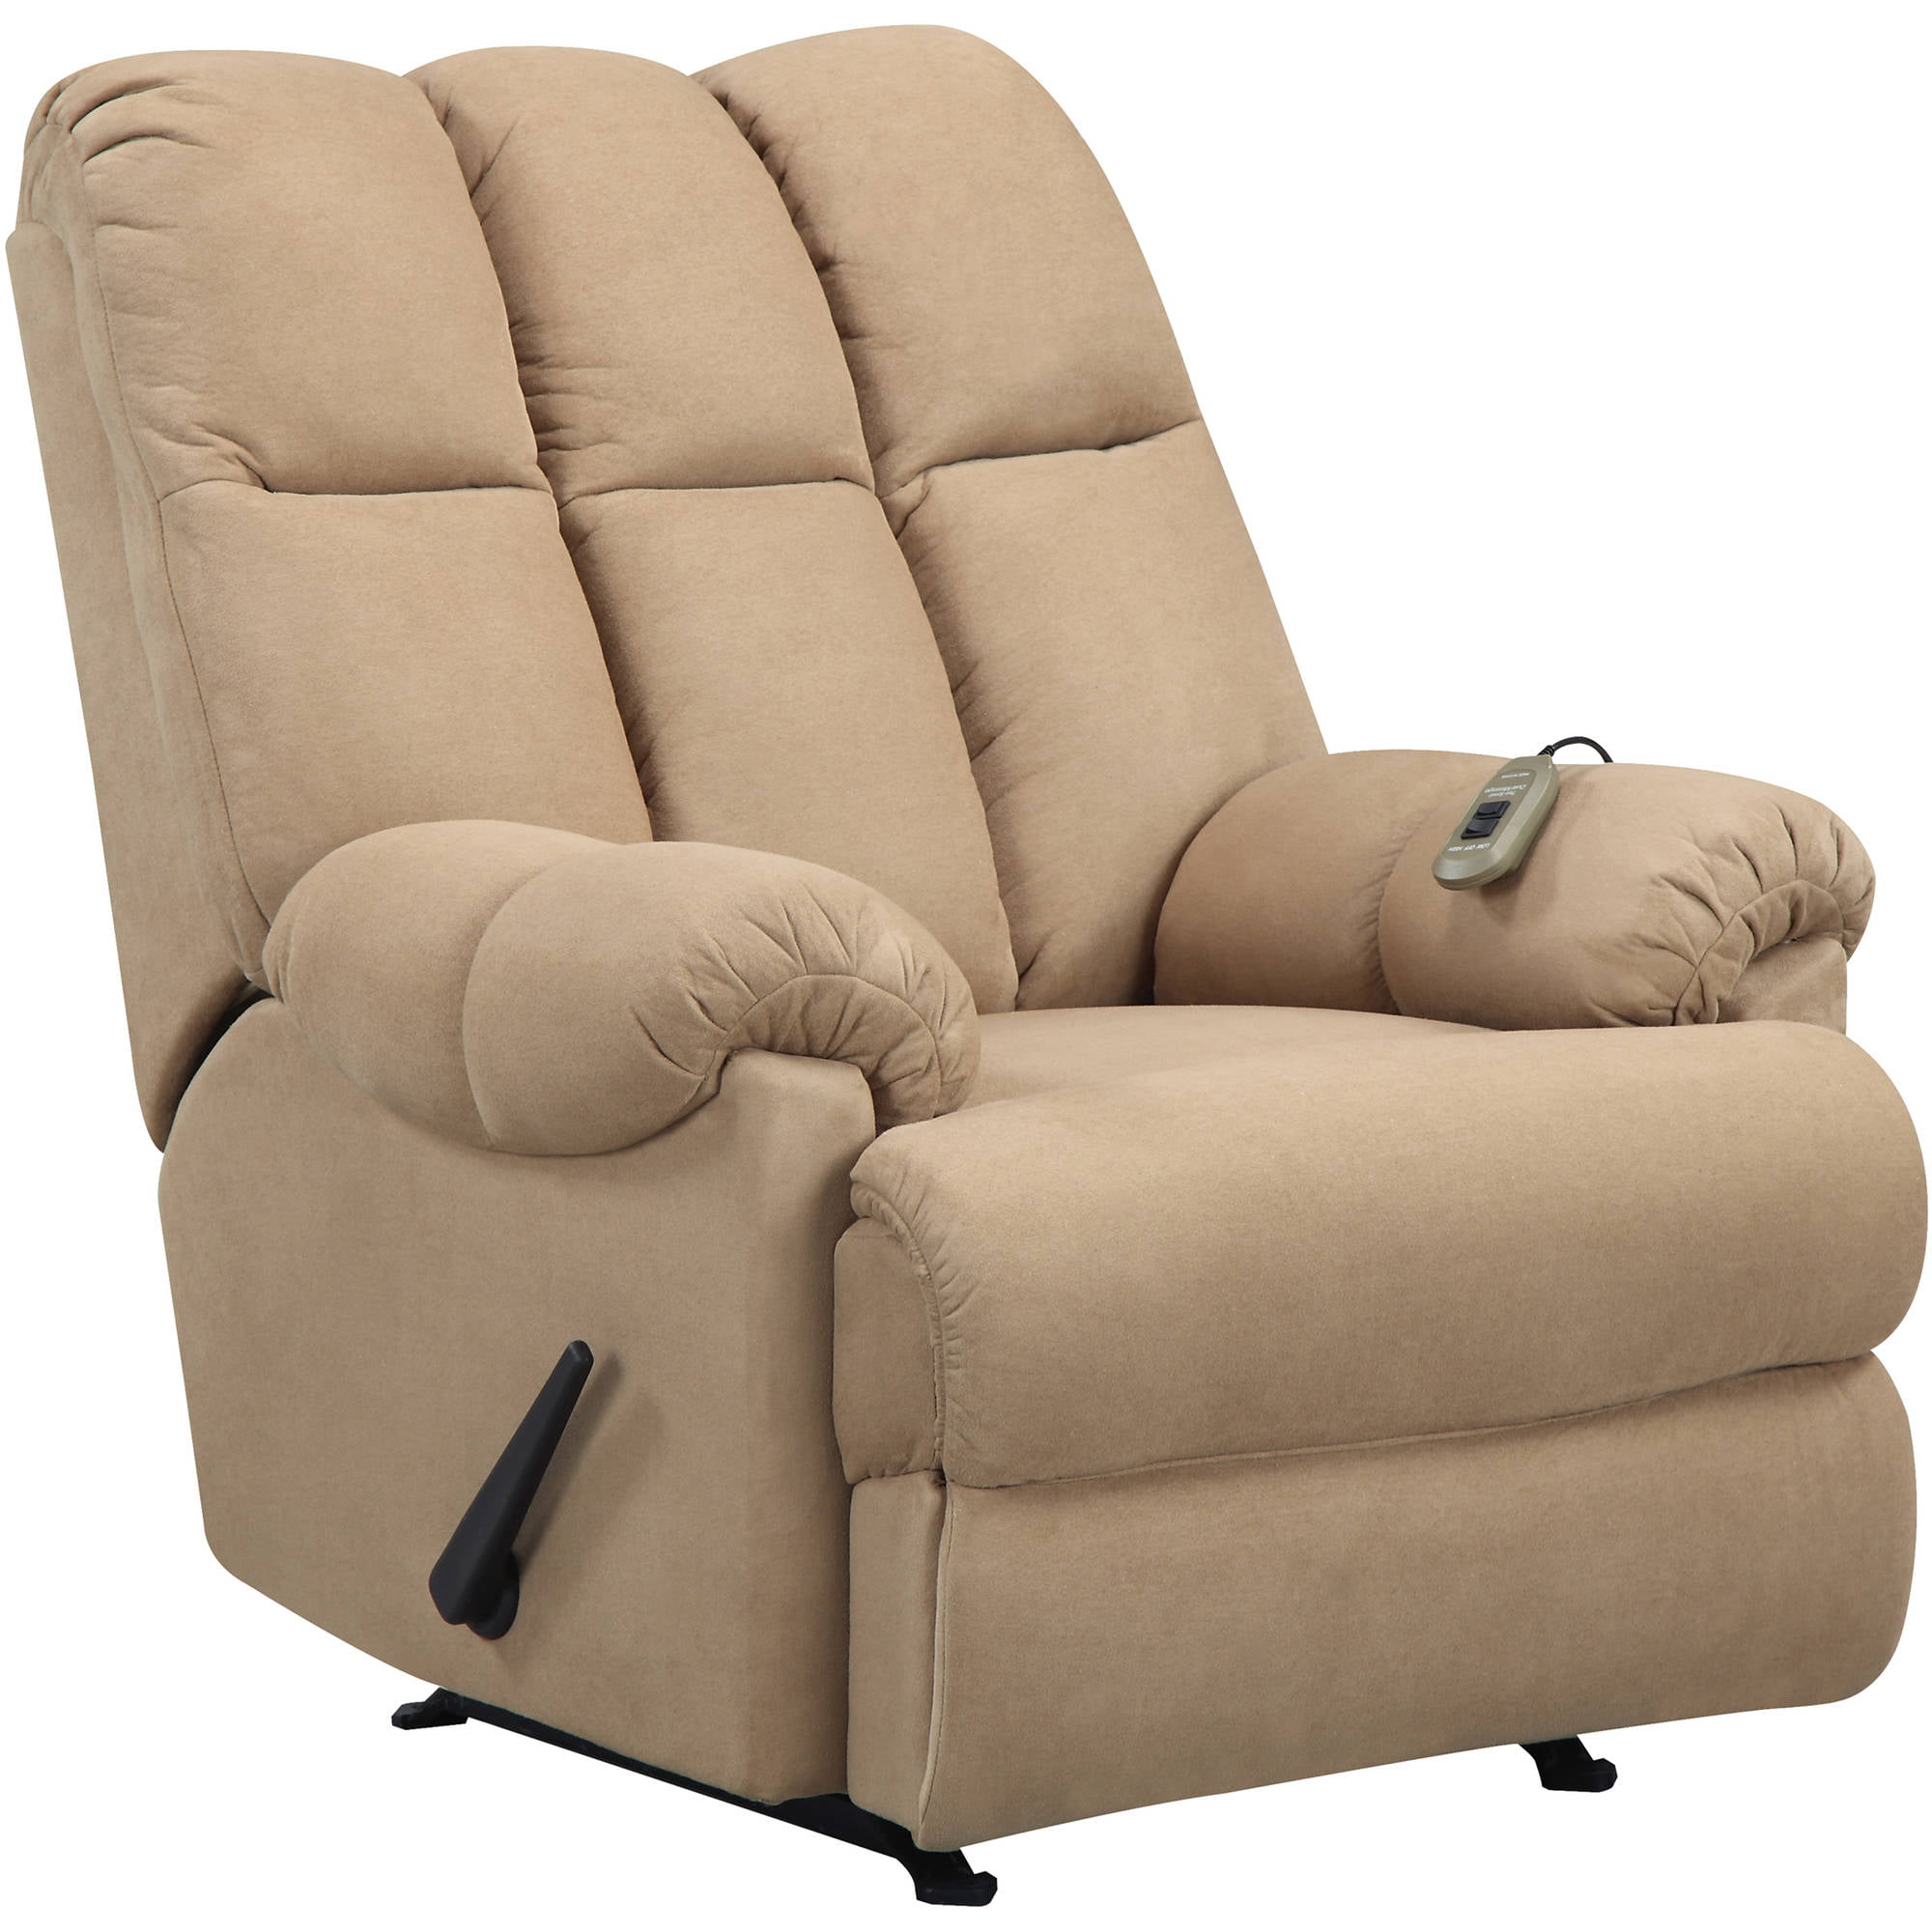 Ordinaire Dorel Living Padded Massage Rocker Recliner, Multiple Colors   Walmart.com